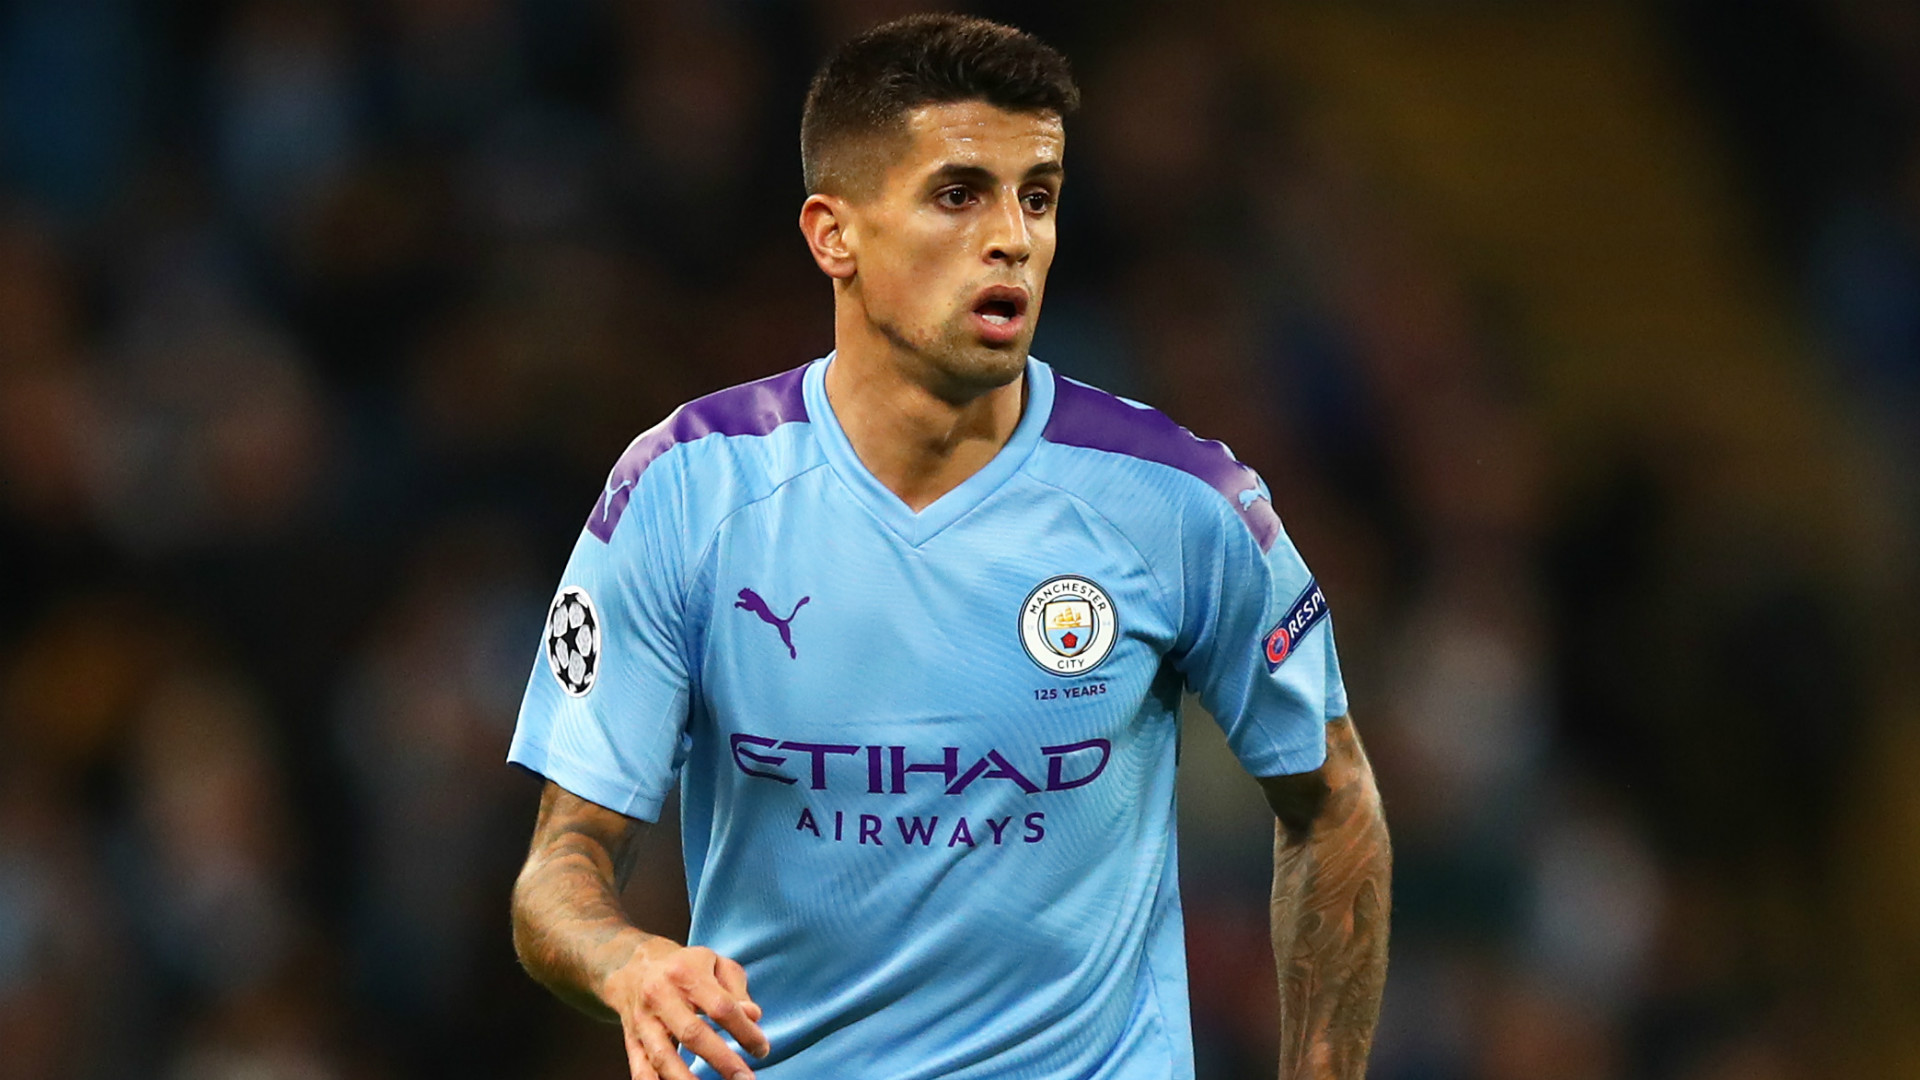 'Cancelo has been the best player in training since the restart' - Guardiola backs Man City full-back amid transfer rumours